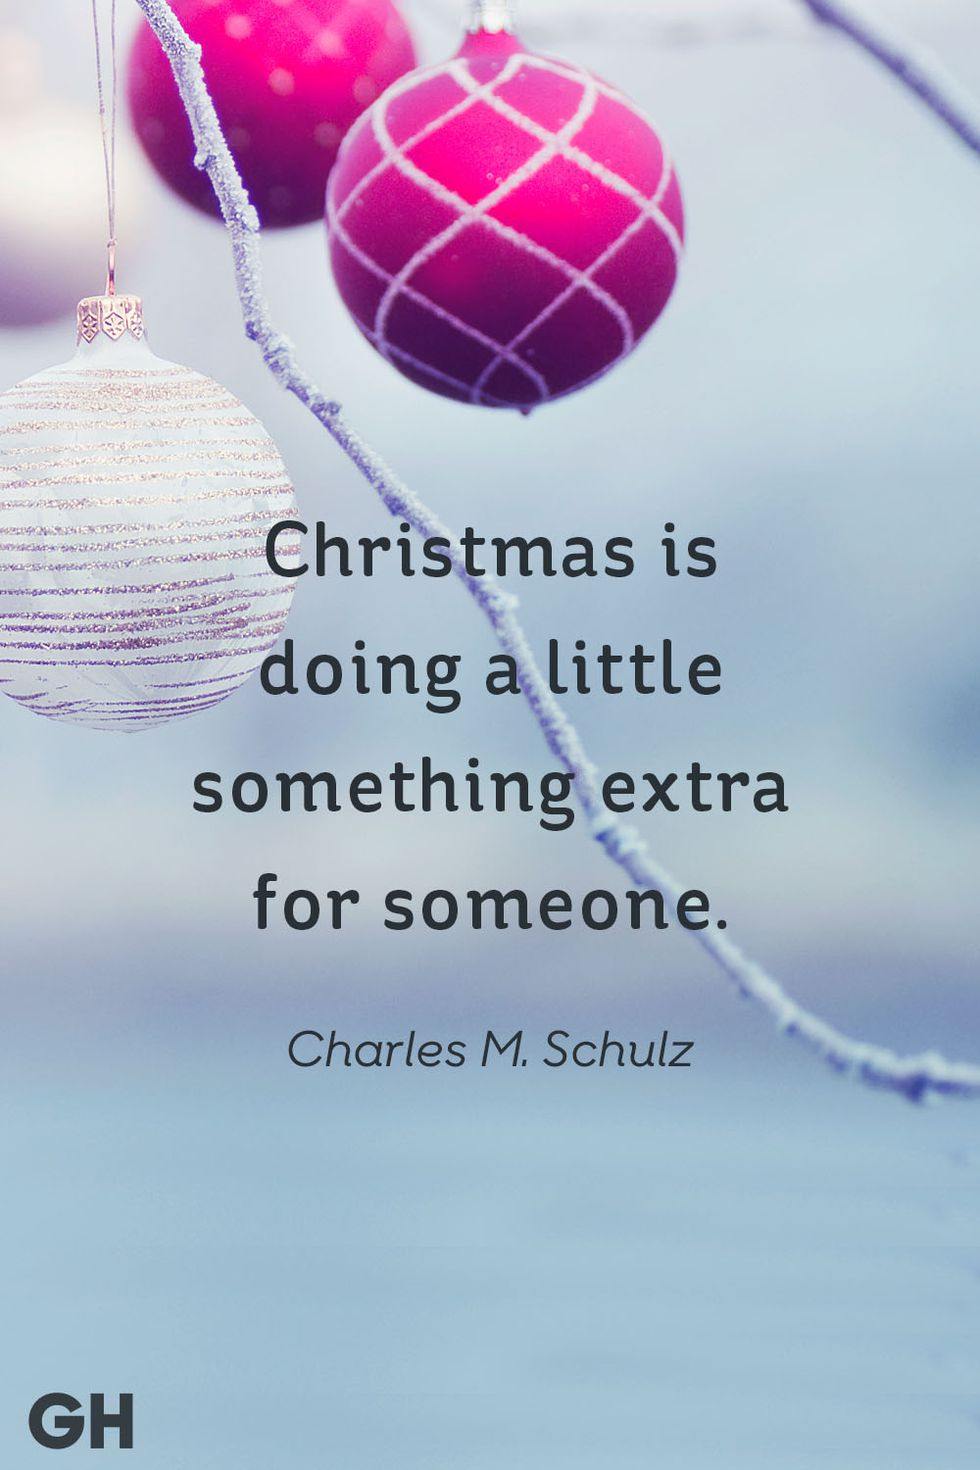 christmas-quote-charles-schulz